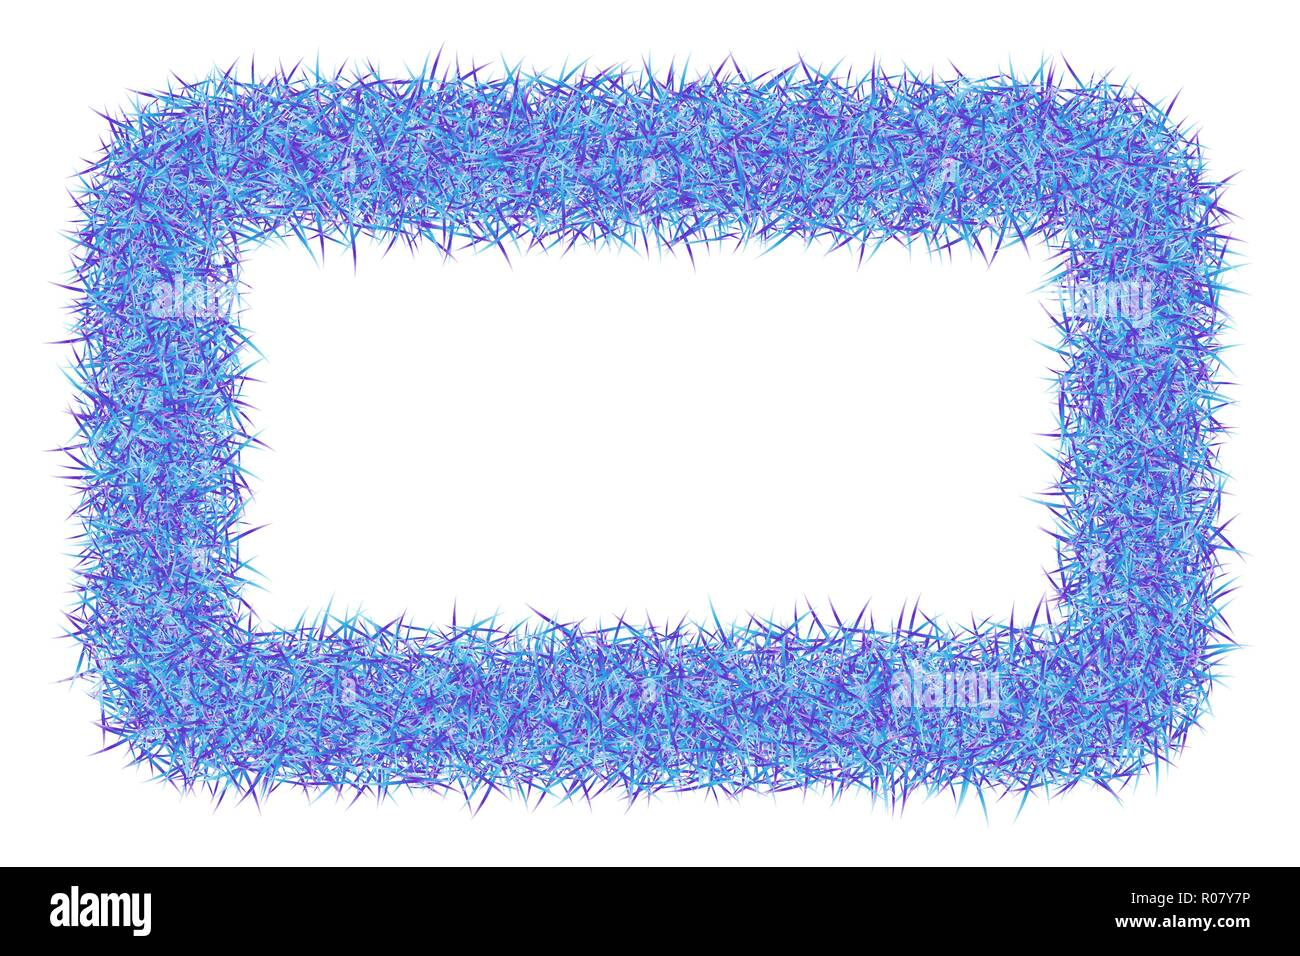 Shaggy abstract frame on white background. Fluffy border texture. - Stock Vector